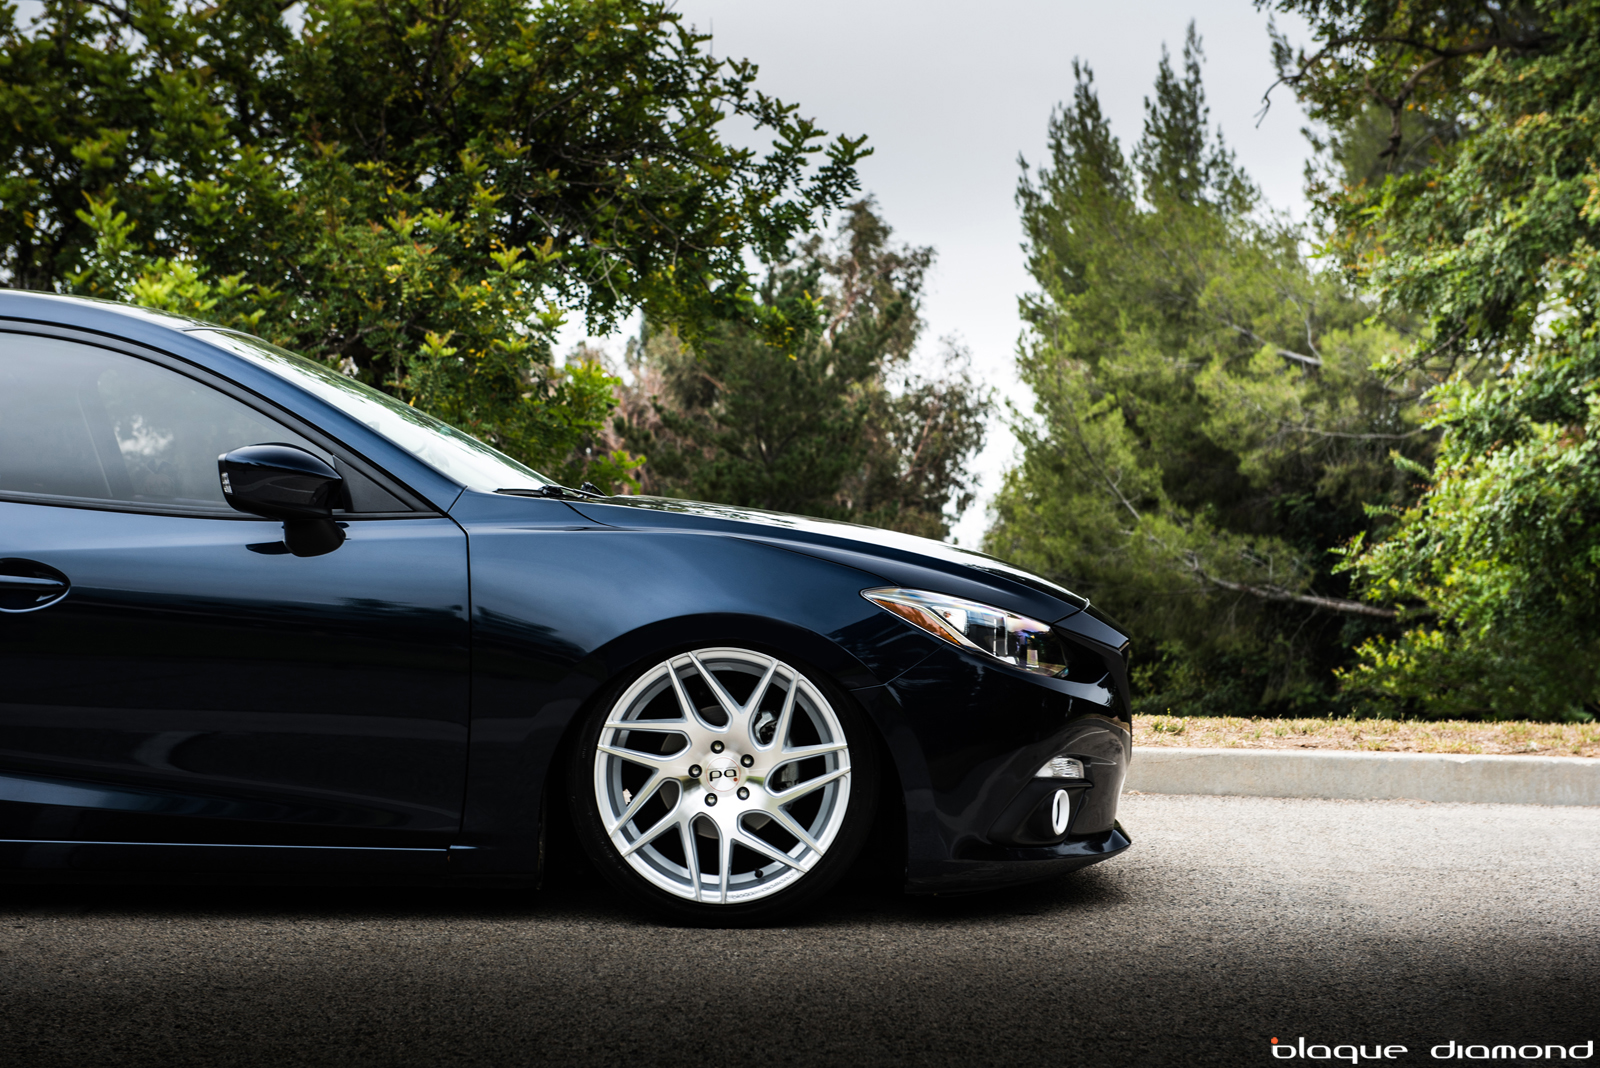 2014 Mazda 3 Fitted With 19 Inch BD-3's in Silver | BLOG 2014 Mazda 3 Wheel Size